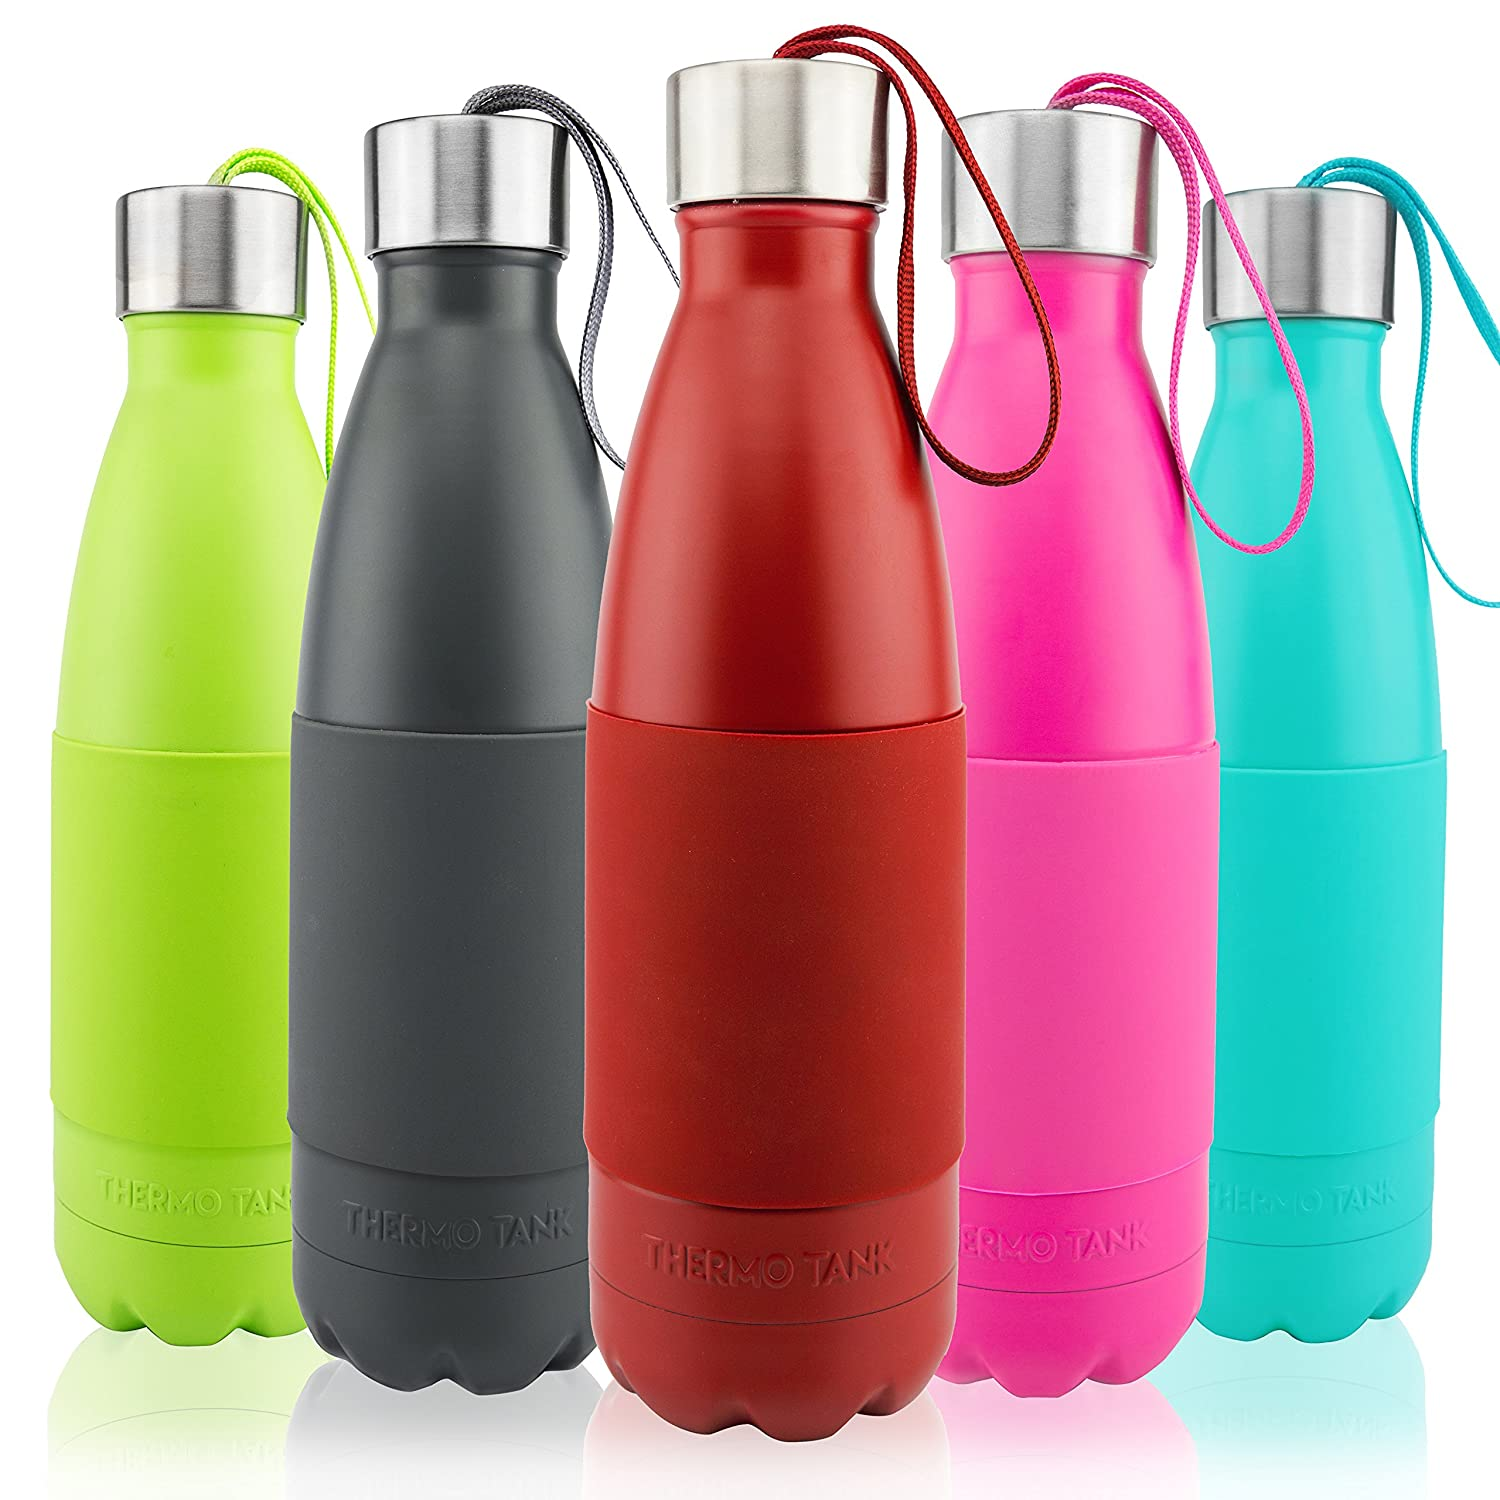 Ice Cold 36 Hours Thermo Tank Insulated Stainless Steel Water Bottle Vacuum Copper Technology Carry Loop Lid Silicone Grip 17 Ounce